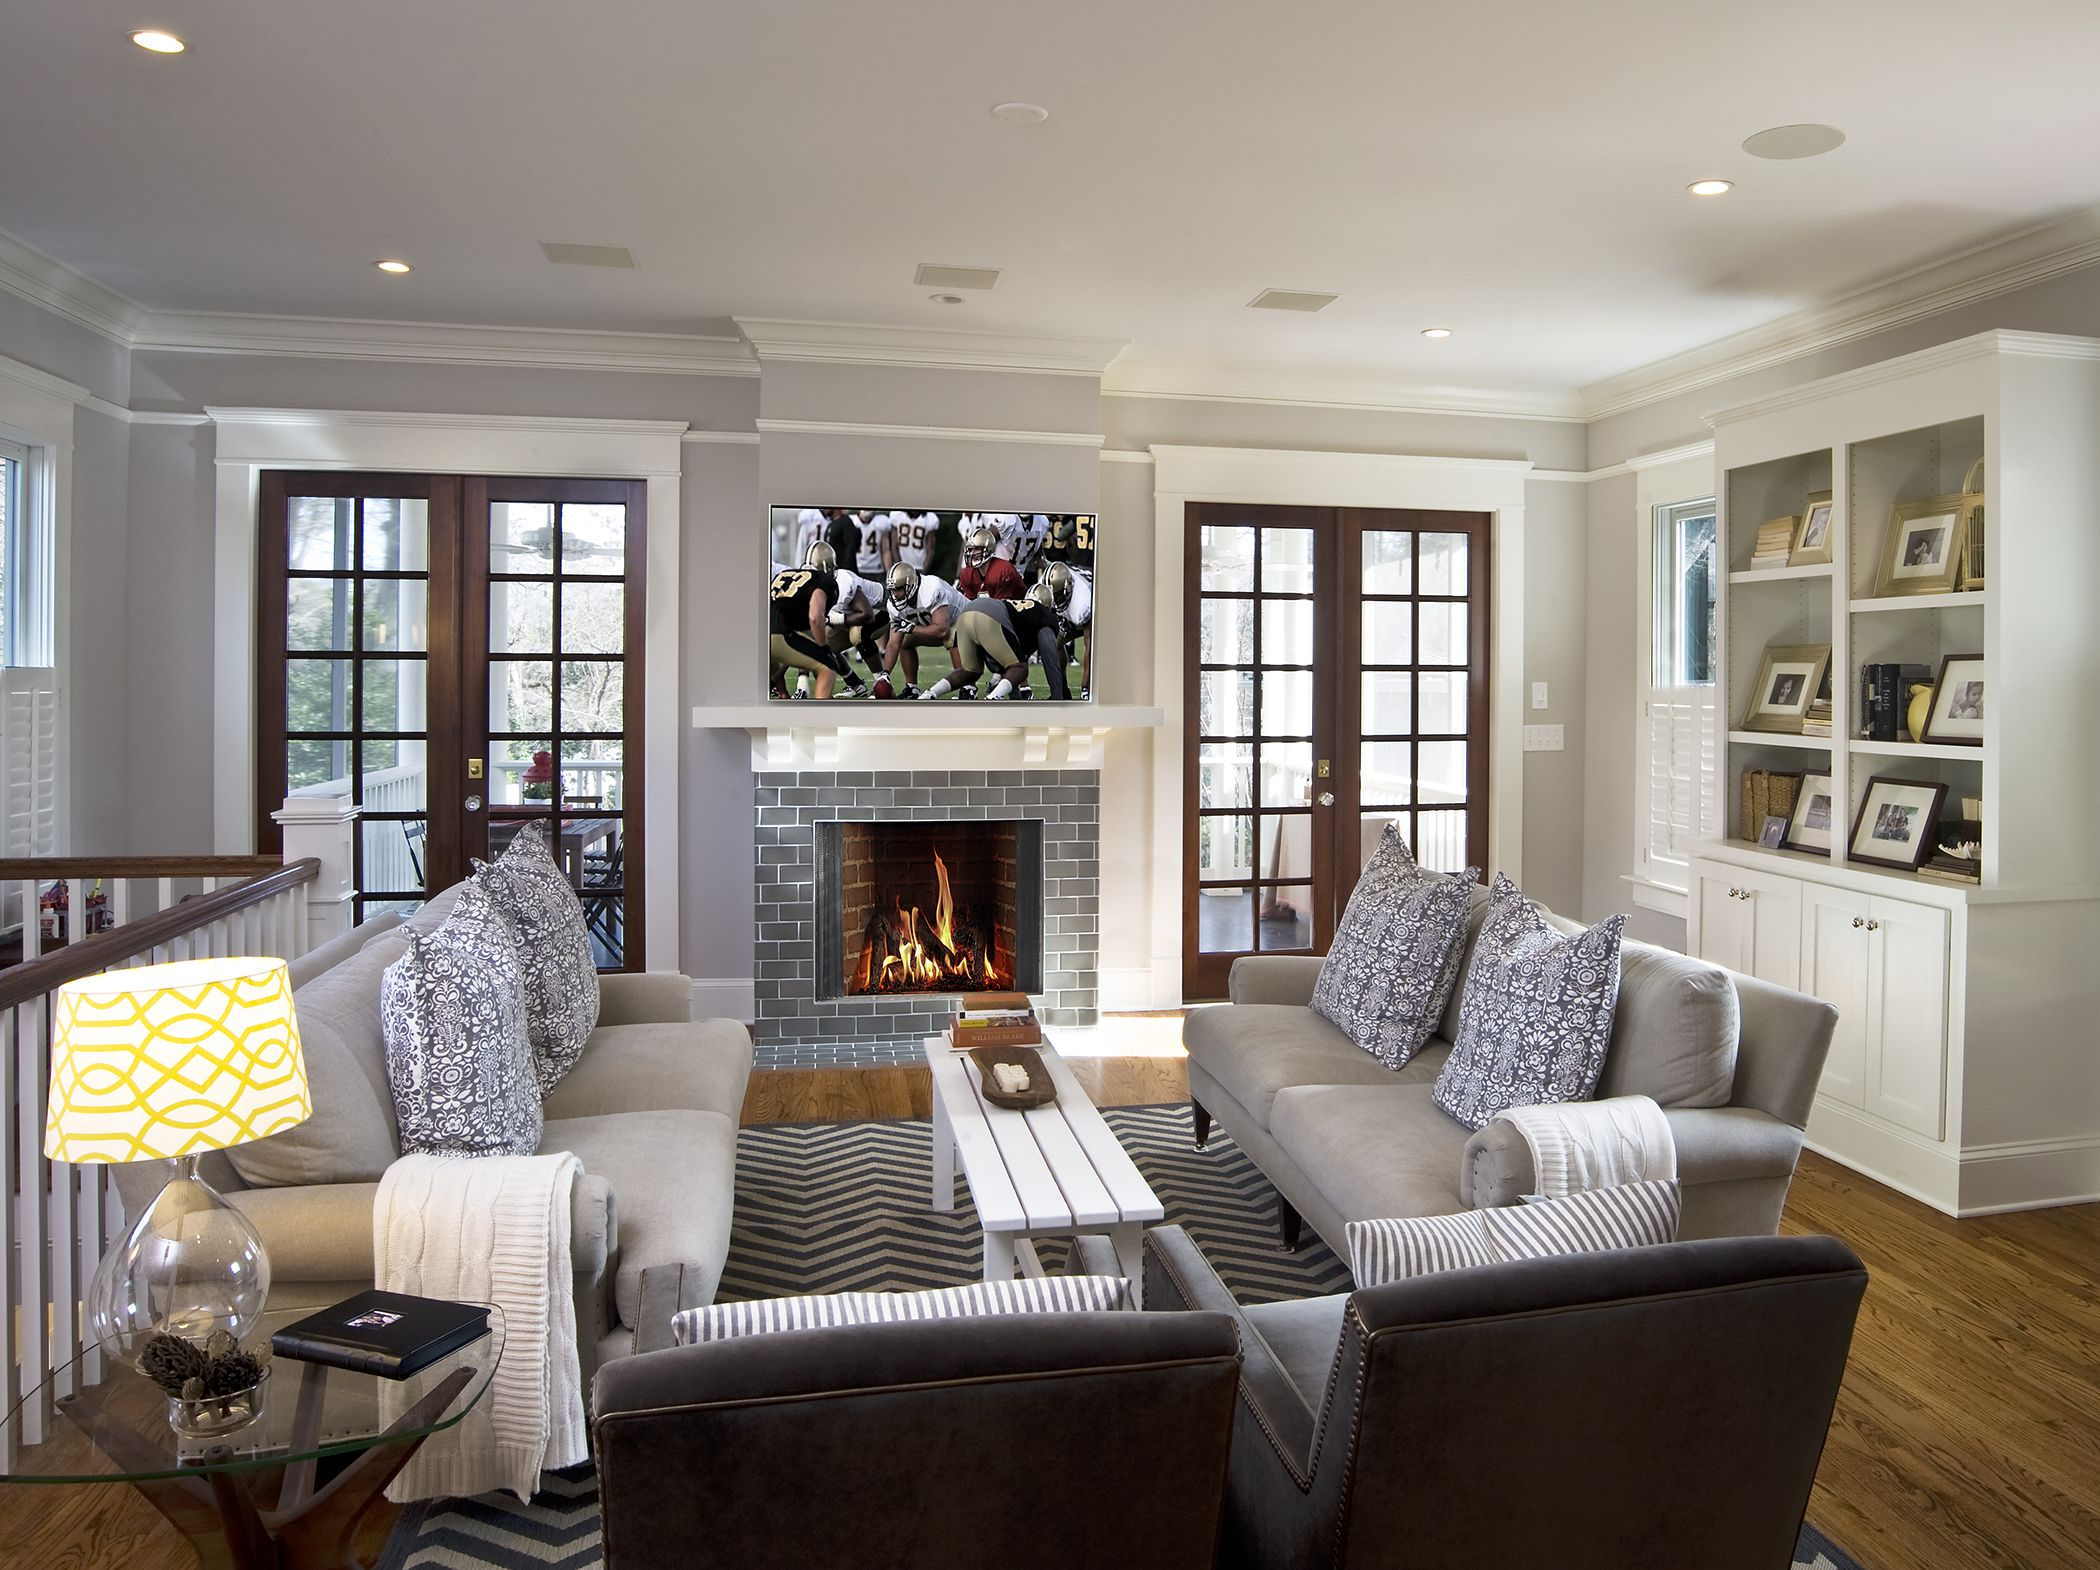 the family room opens to a large screened porch with a double sided